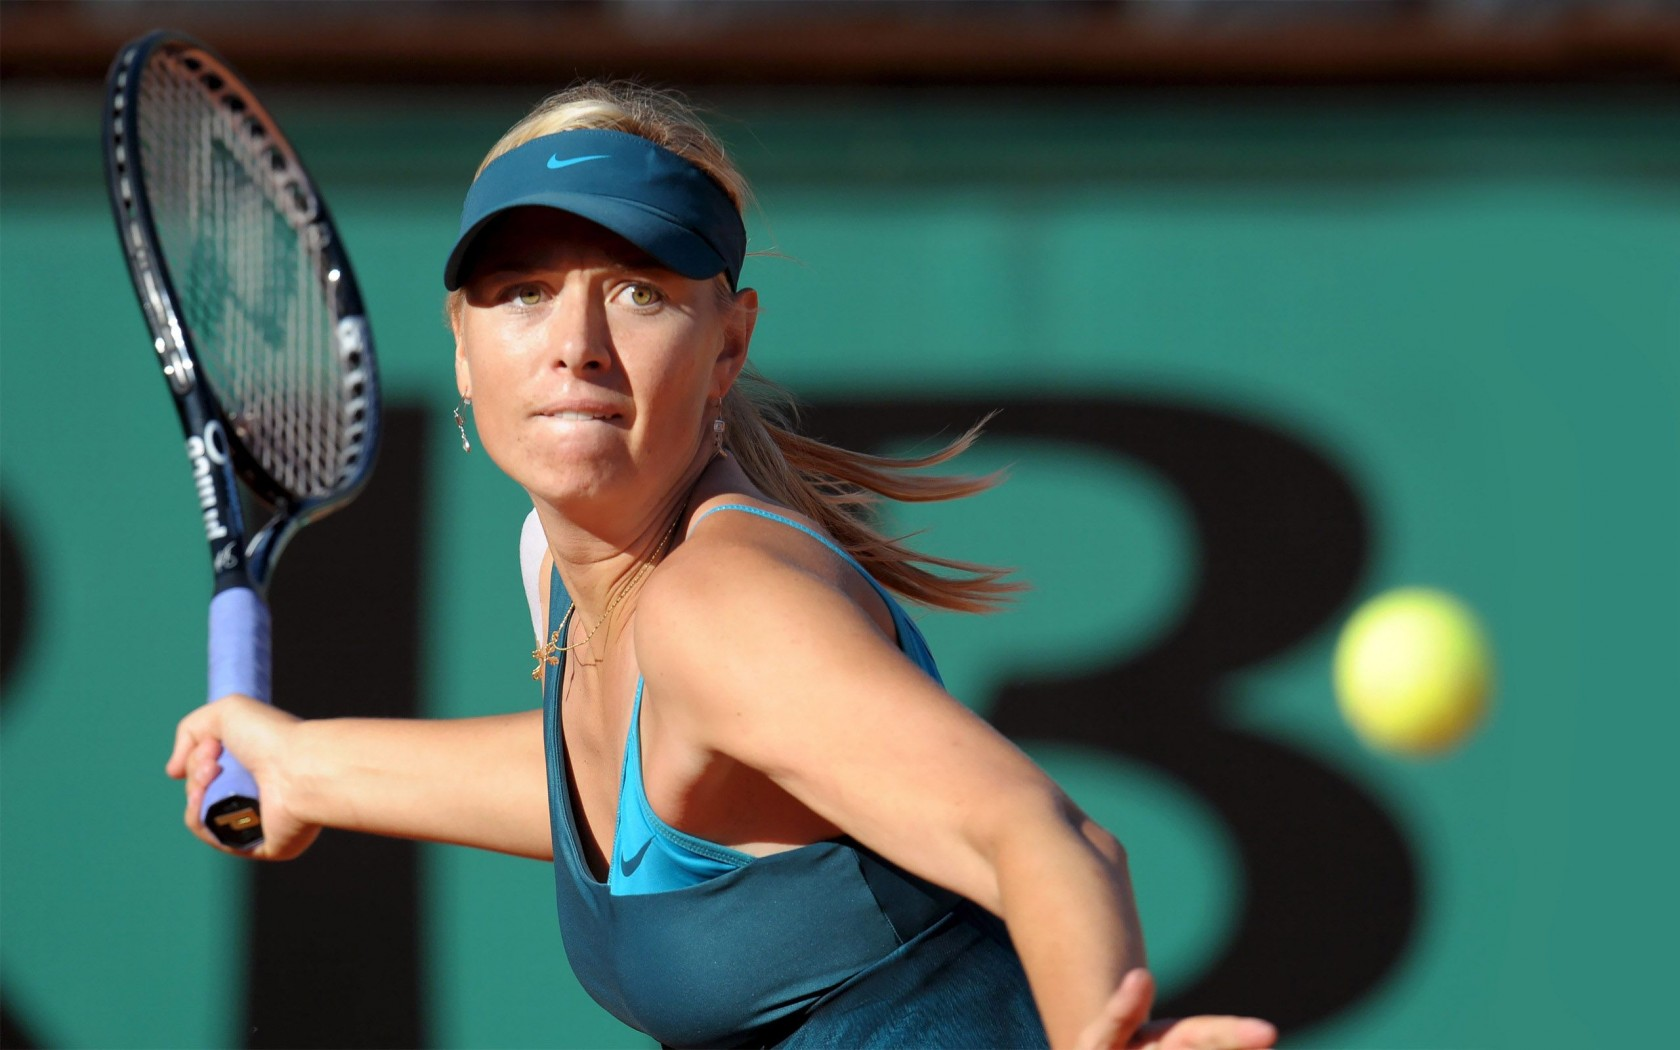 Maria Sharapova suspended for 2 years for failed test